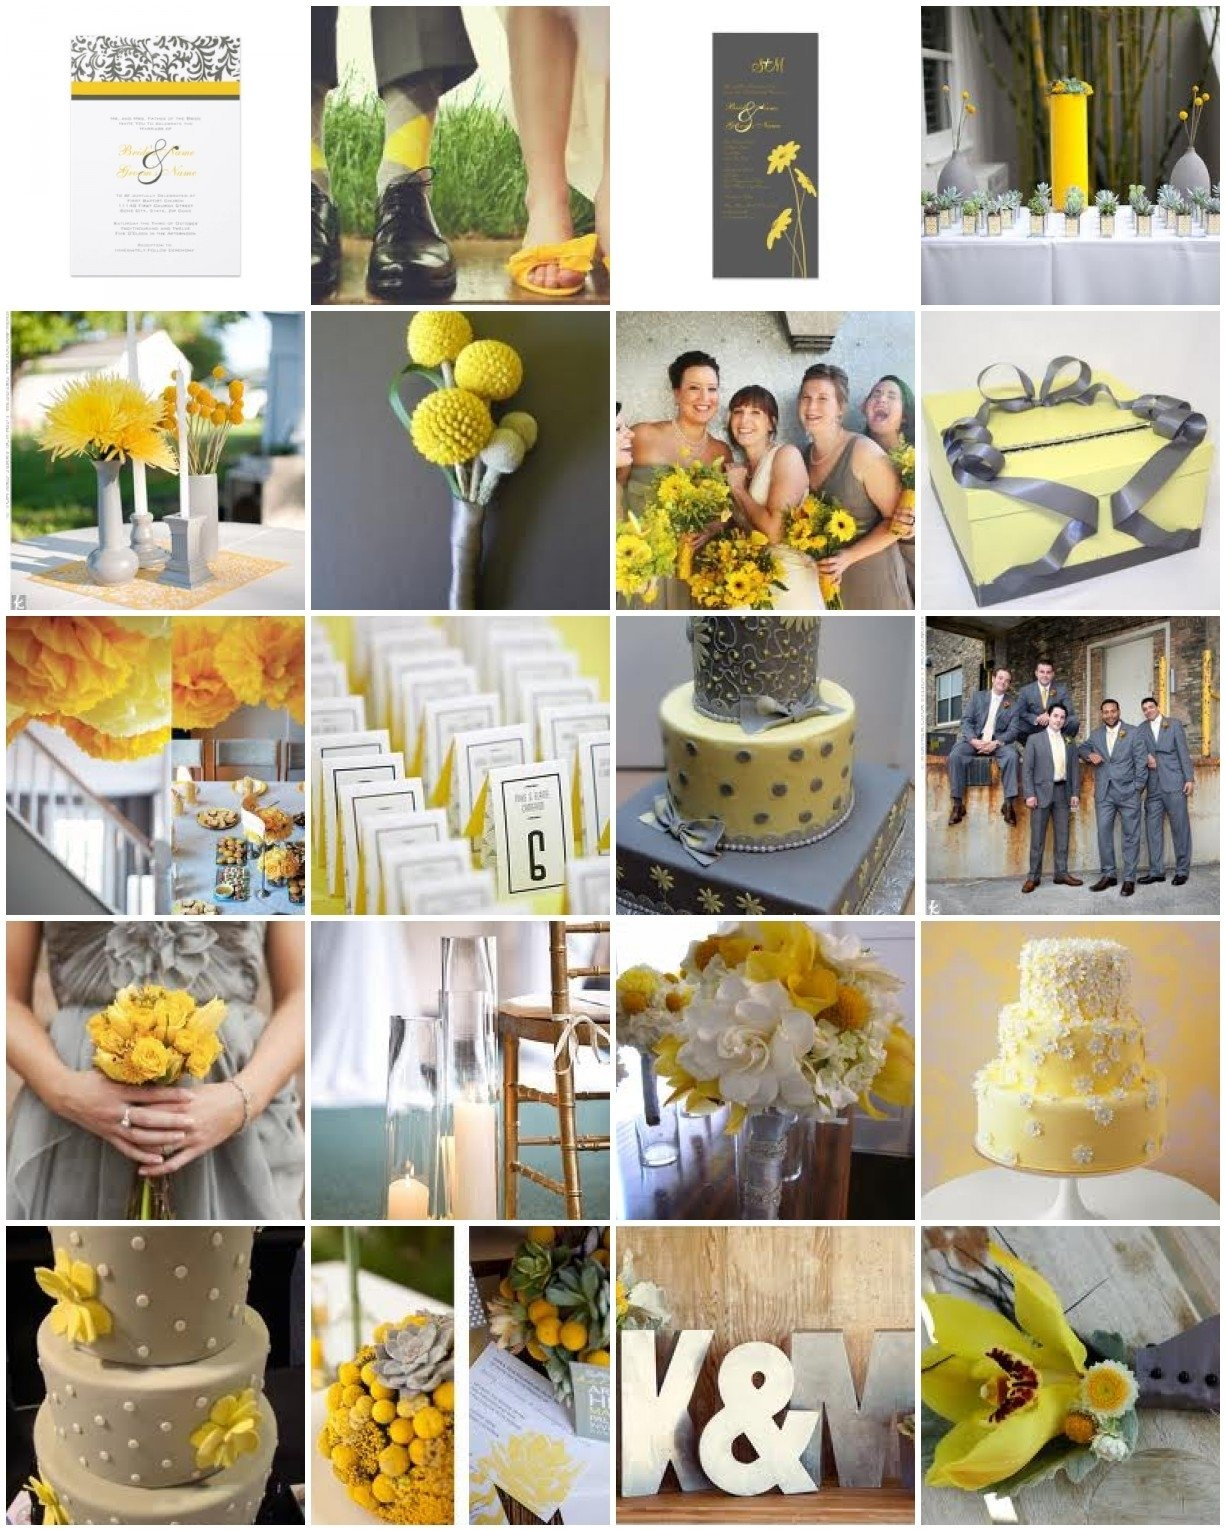 10 Most Recommended Grey And Yellow Wedding Ideas wedding decor new yellow and grey wedding decorations this wedding 2021